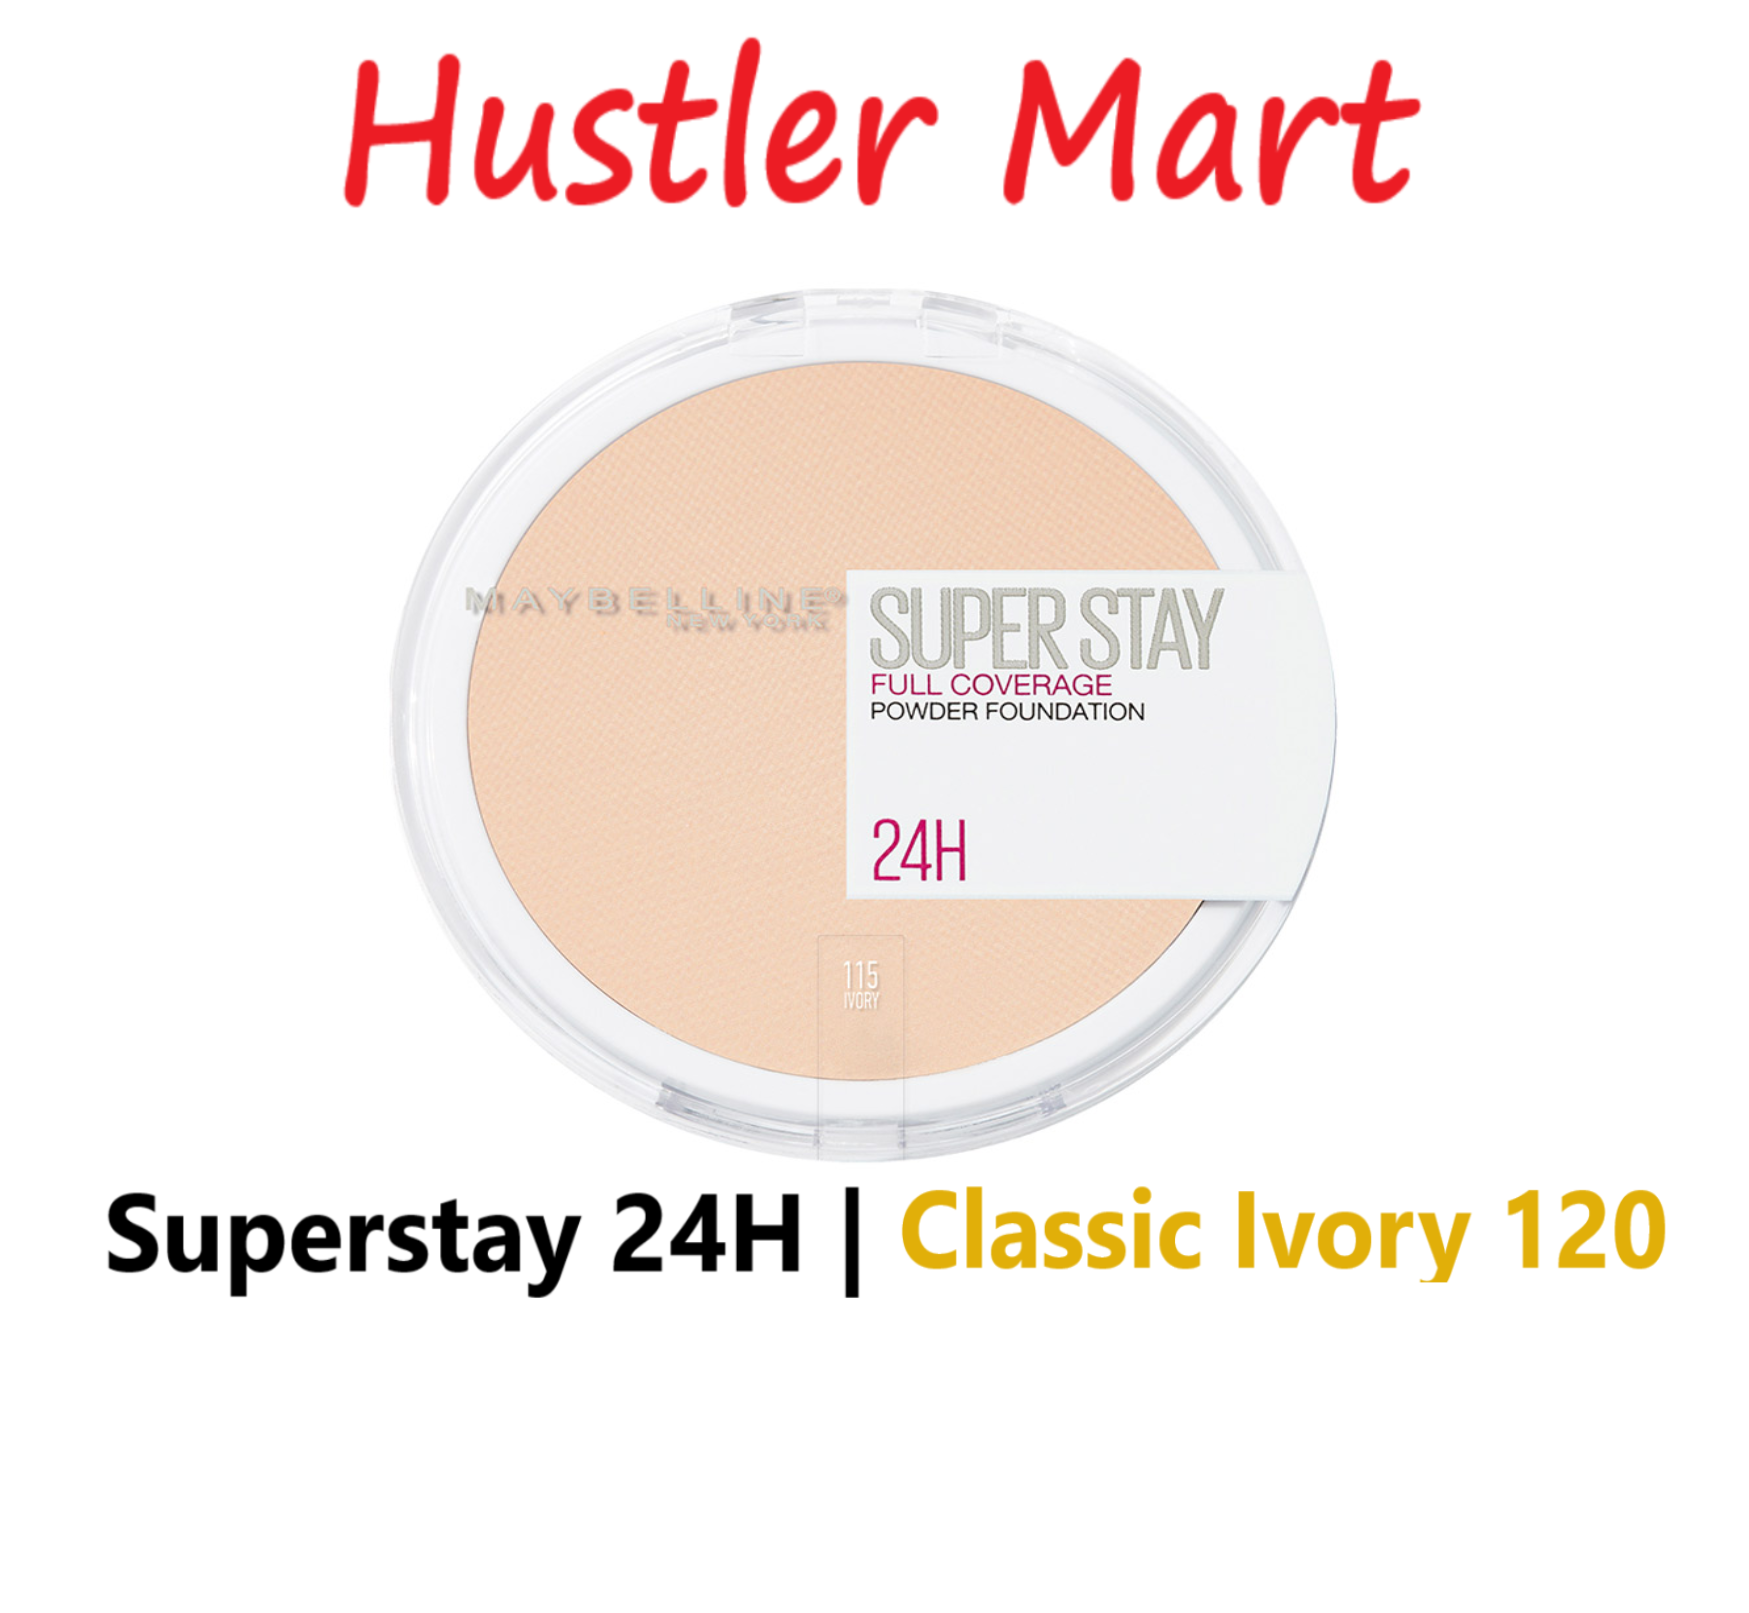 Maybelline Superstay 24H Full Coverage Powder Foundation - Classic Ivory 120